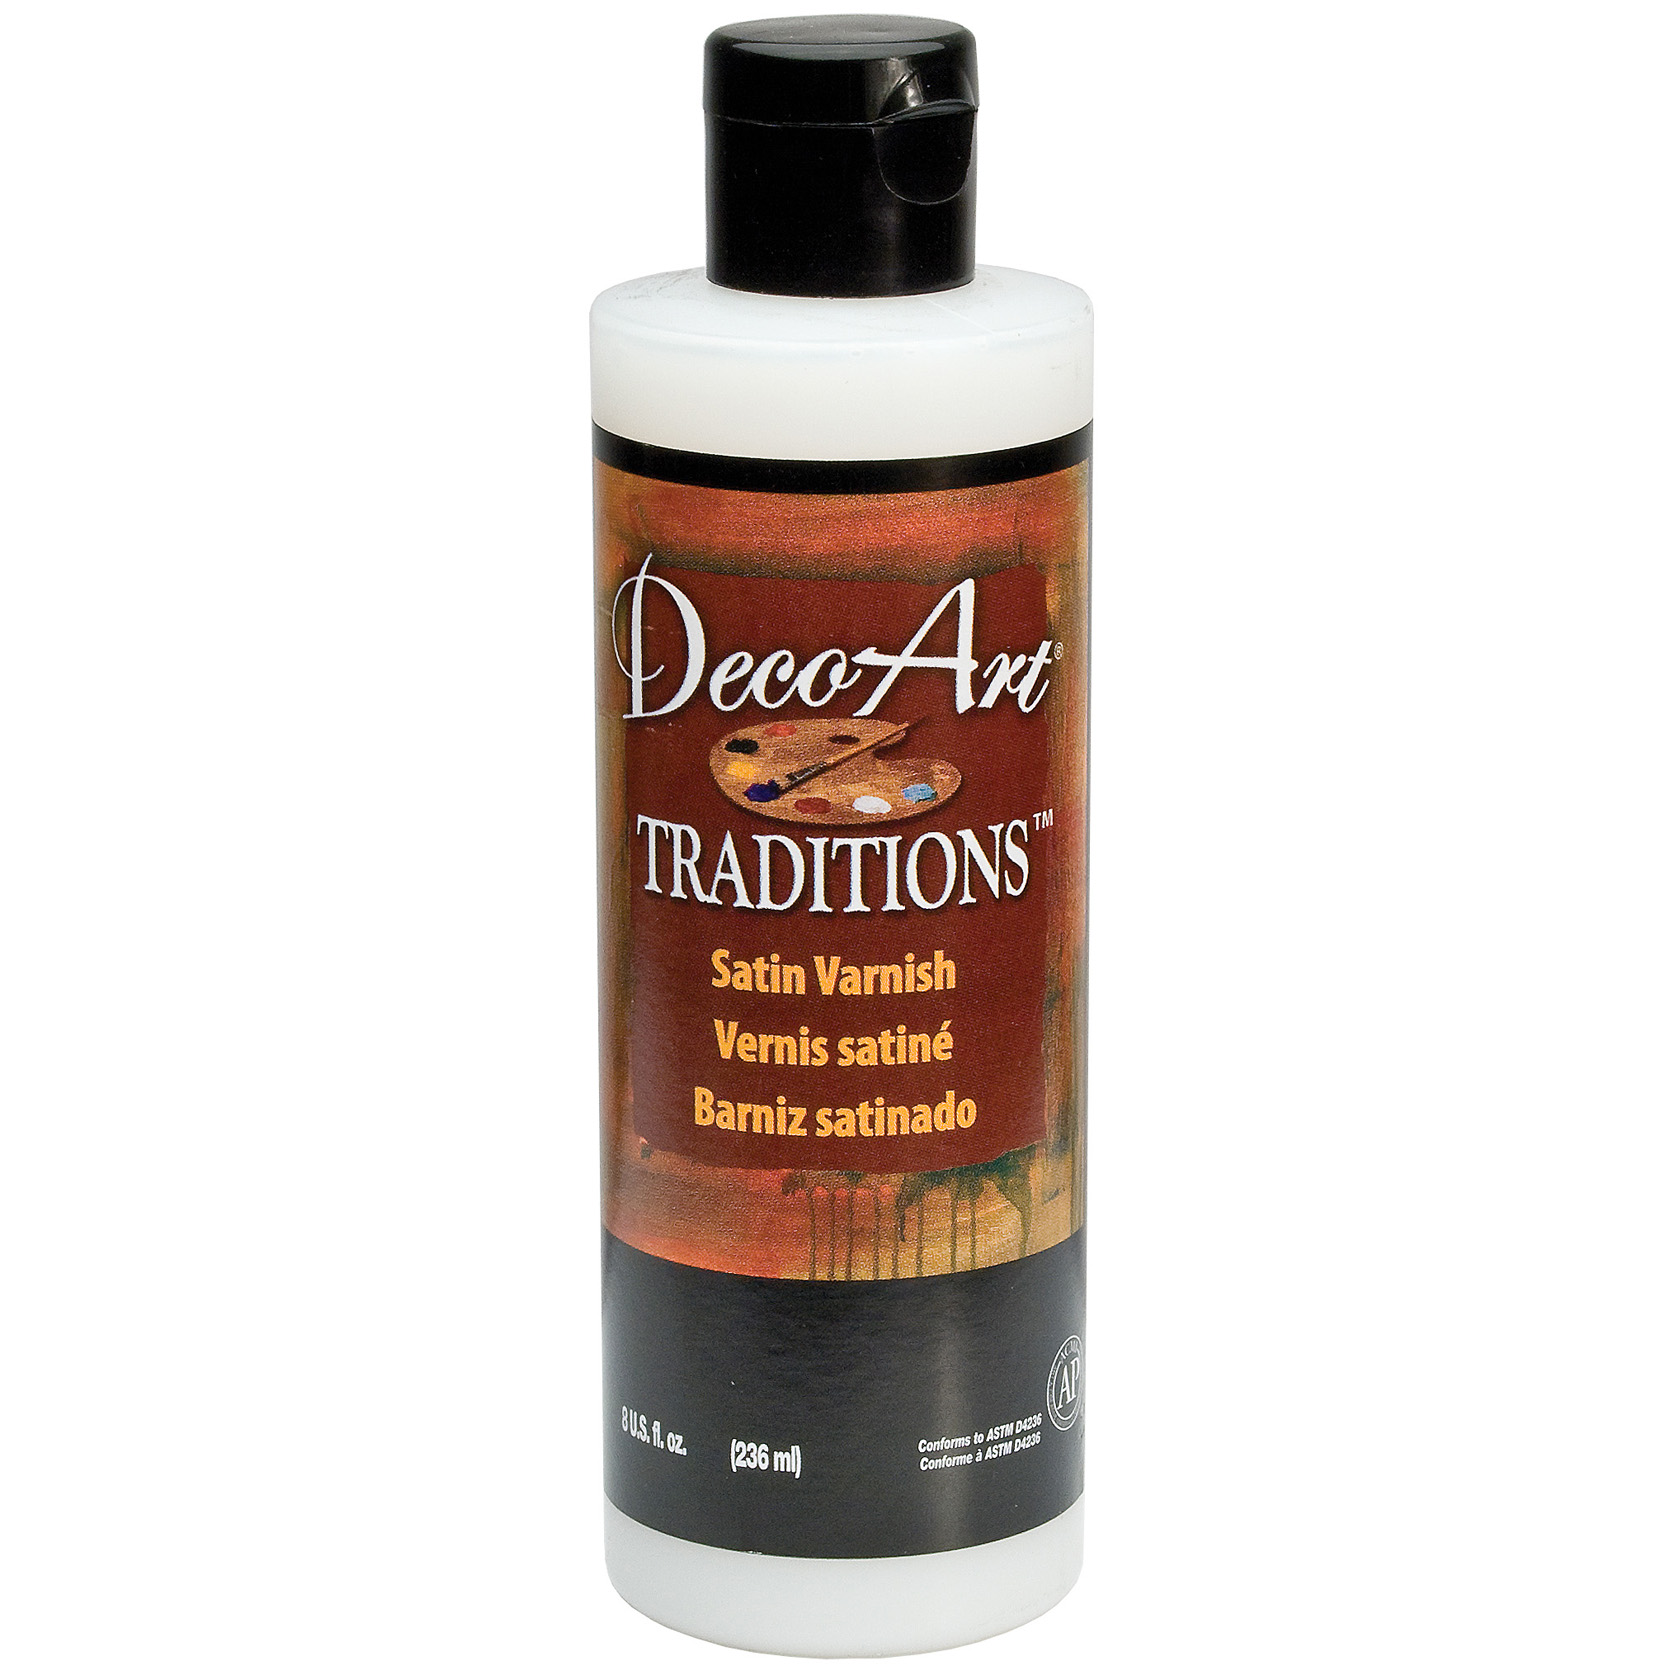 Vernis acrylique satiné - Traditions (DecoArt) - 236ml